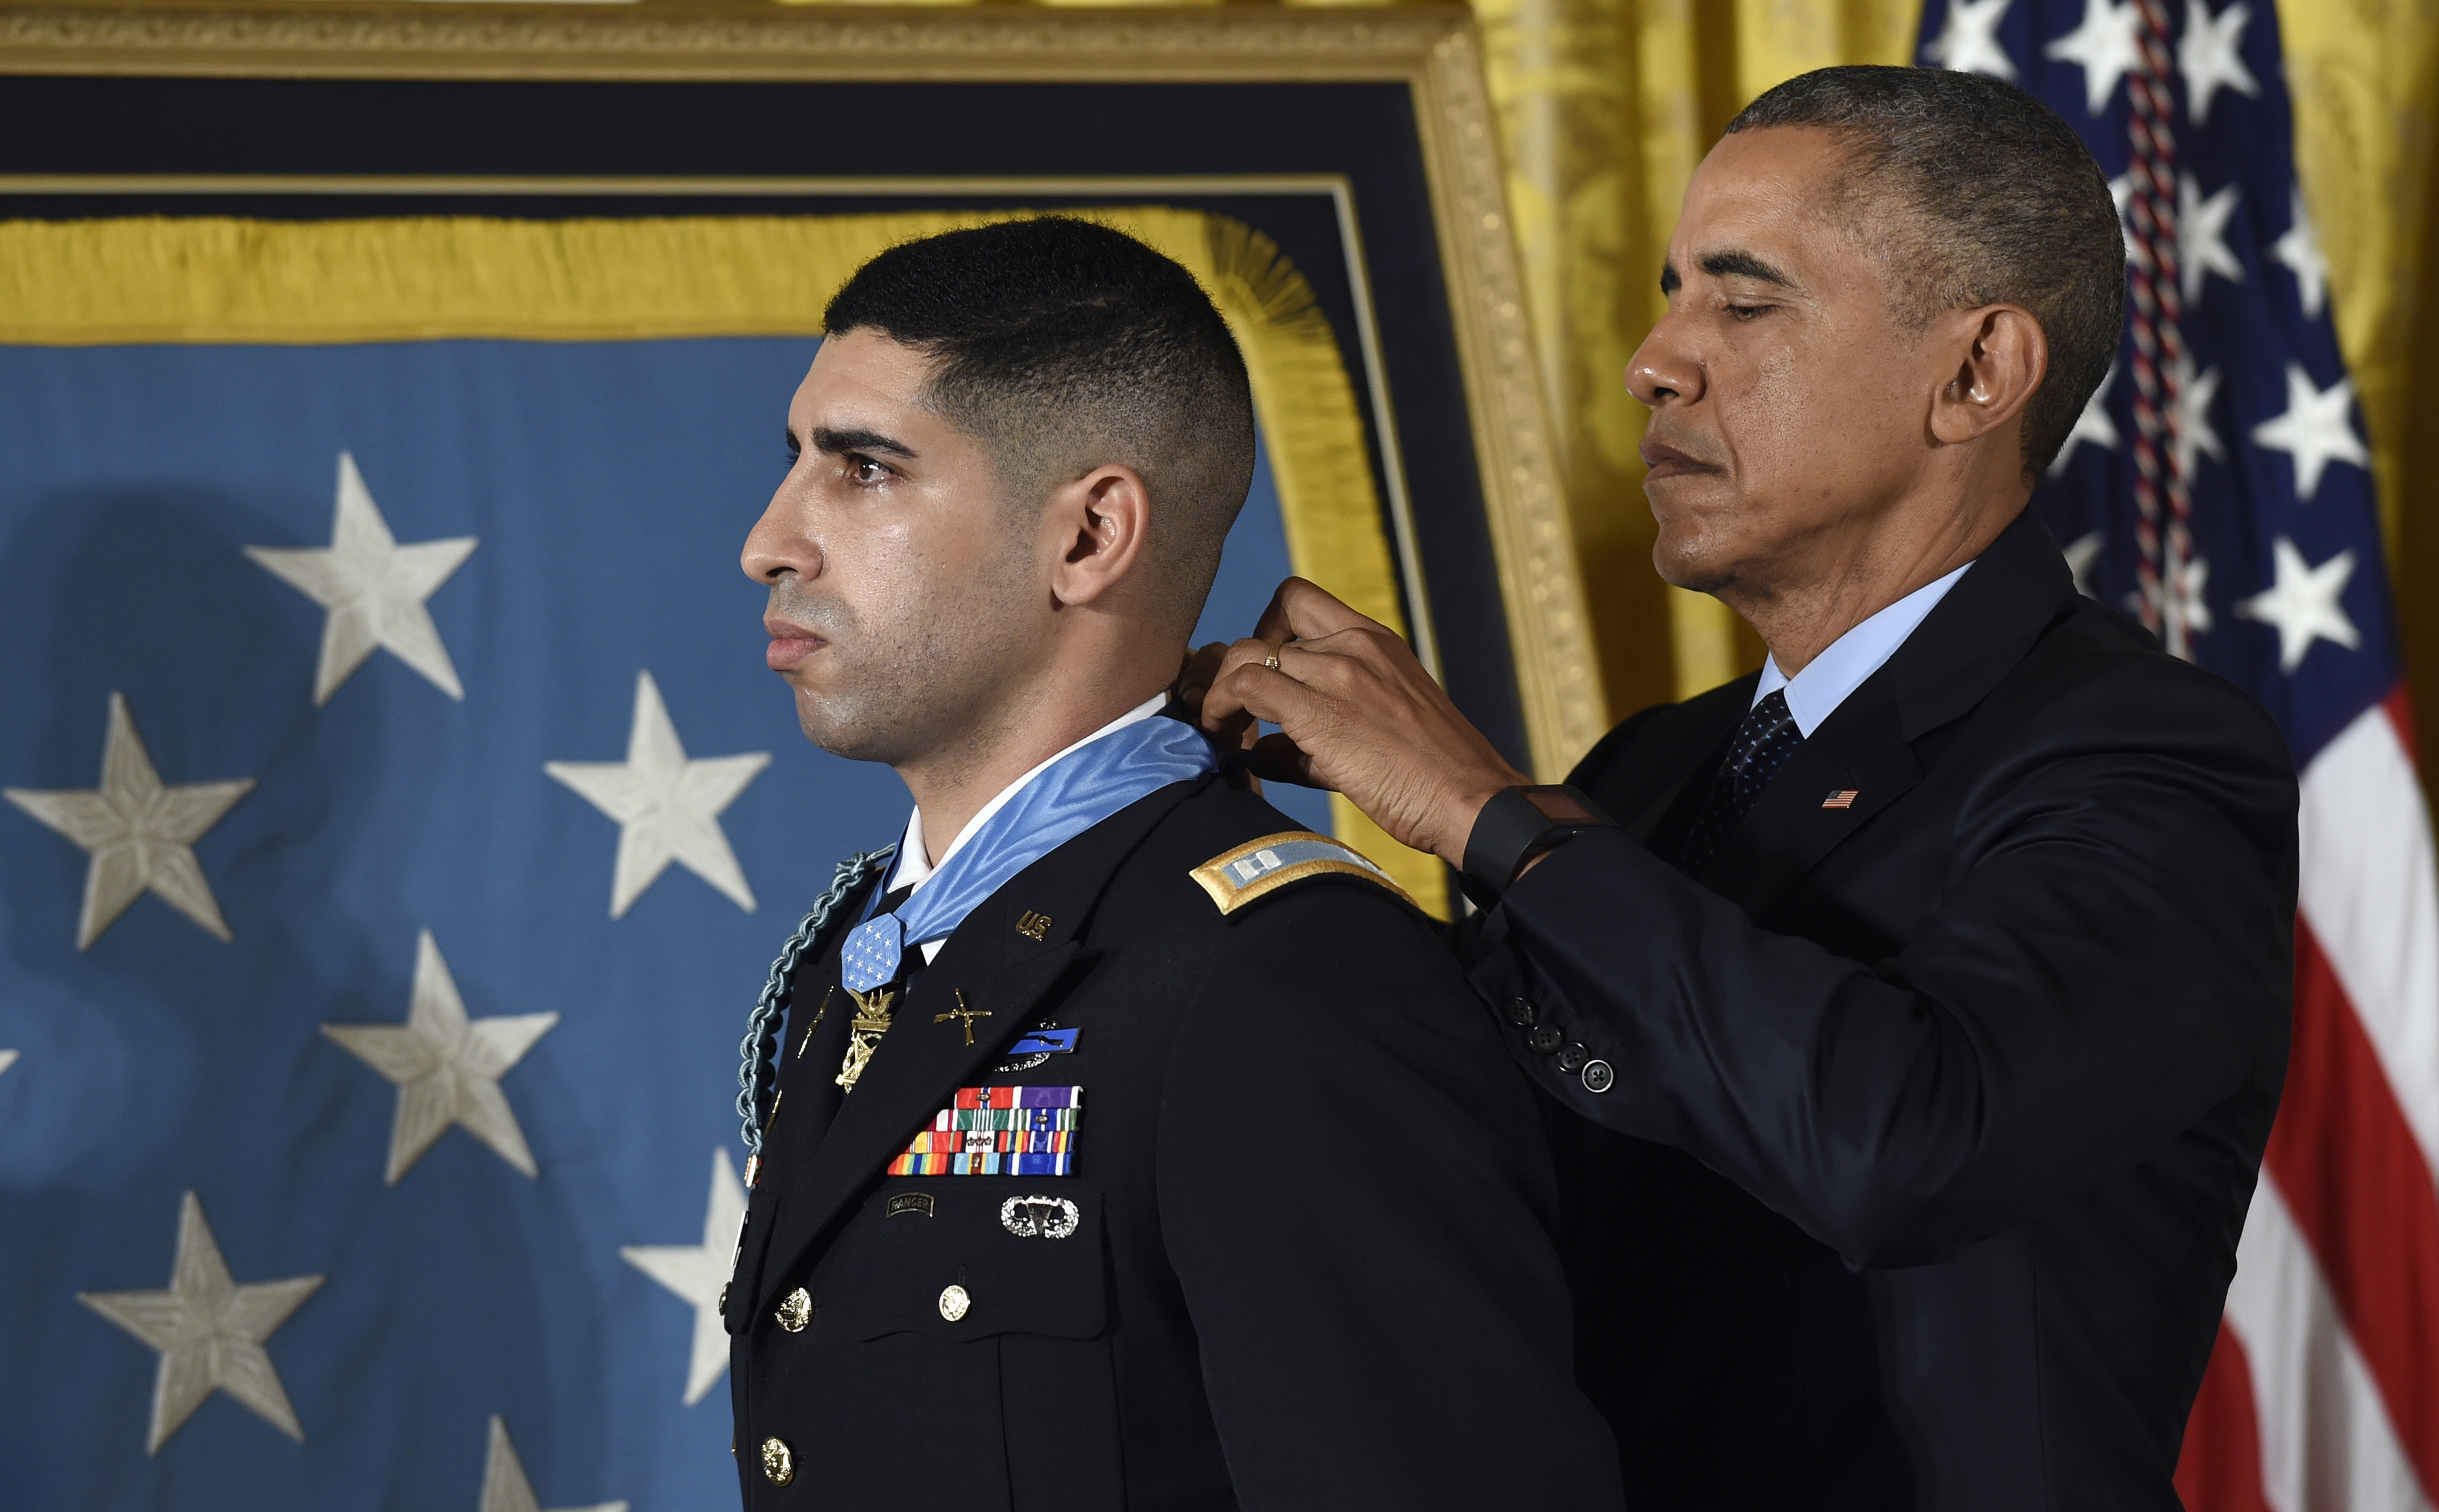 Md. Medal of Honor recipient took stage at DNC